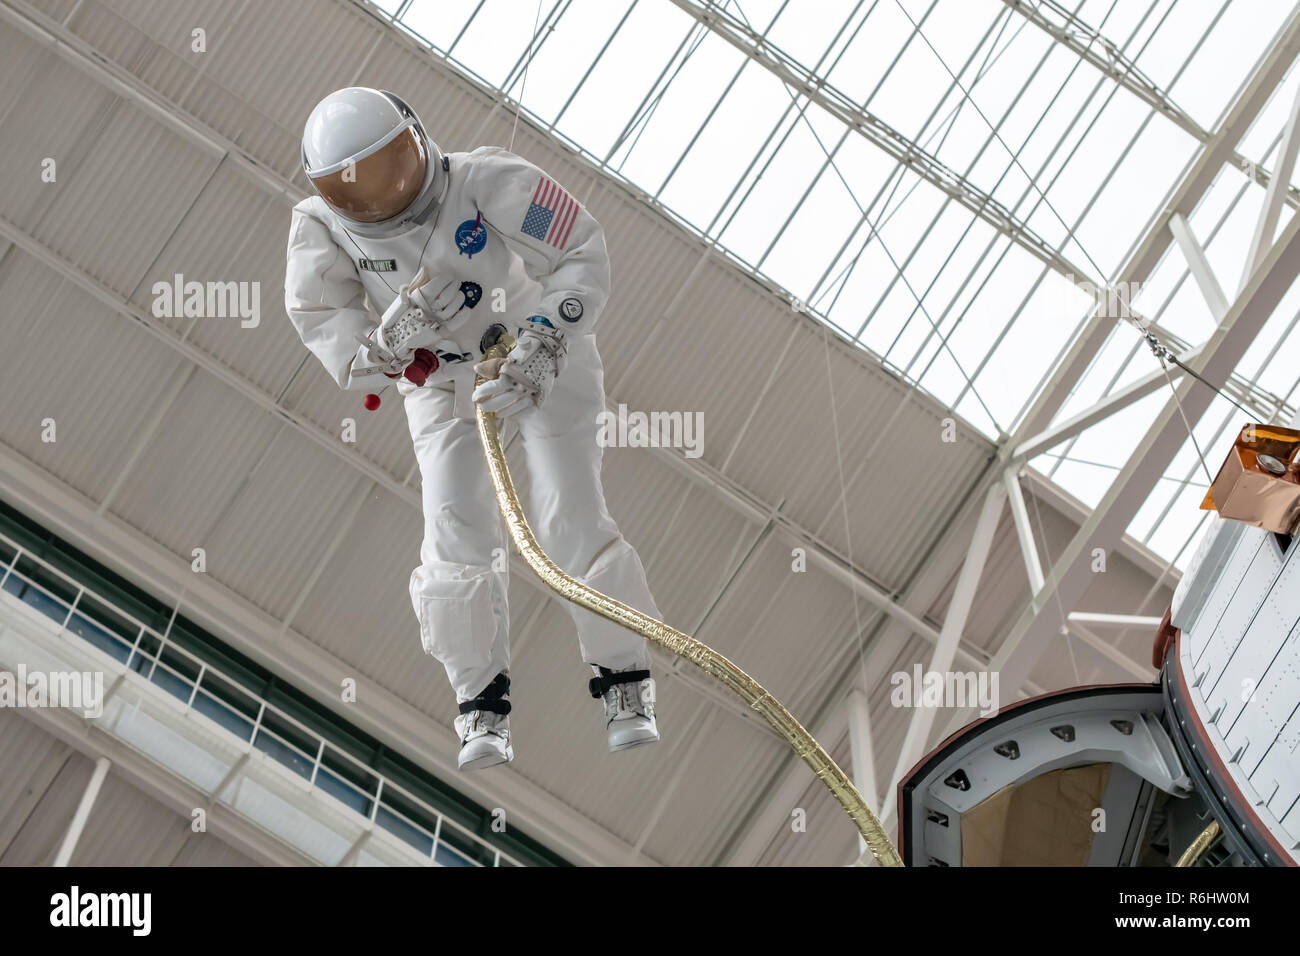 Astronaut E. H. White's NASA spacesuit at Evergreen Aviation & Space Museum in McMinnville, Oregon - Stock Image